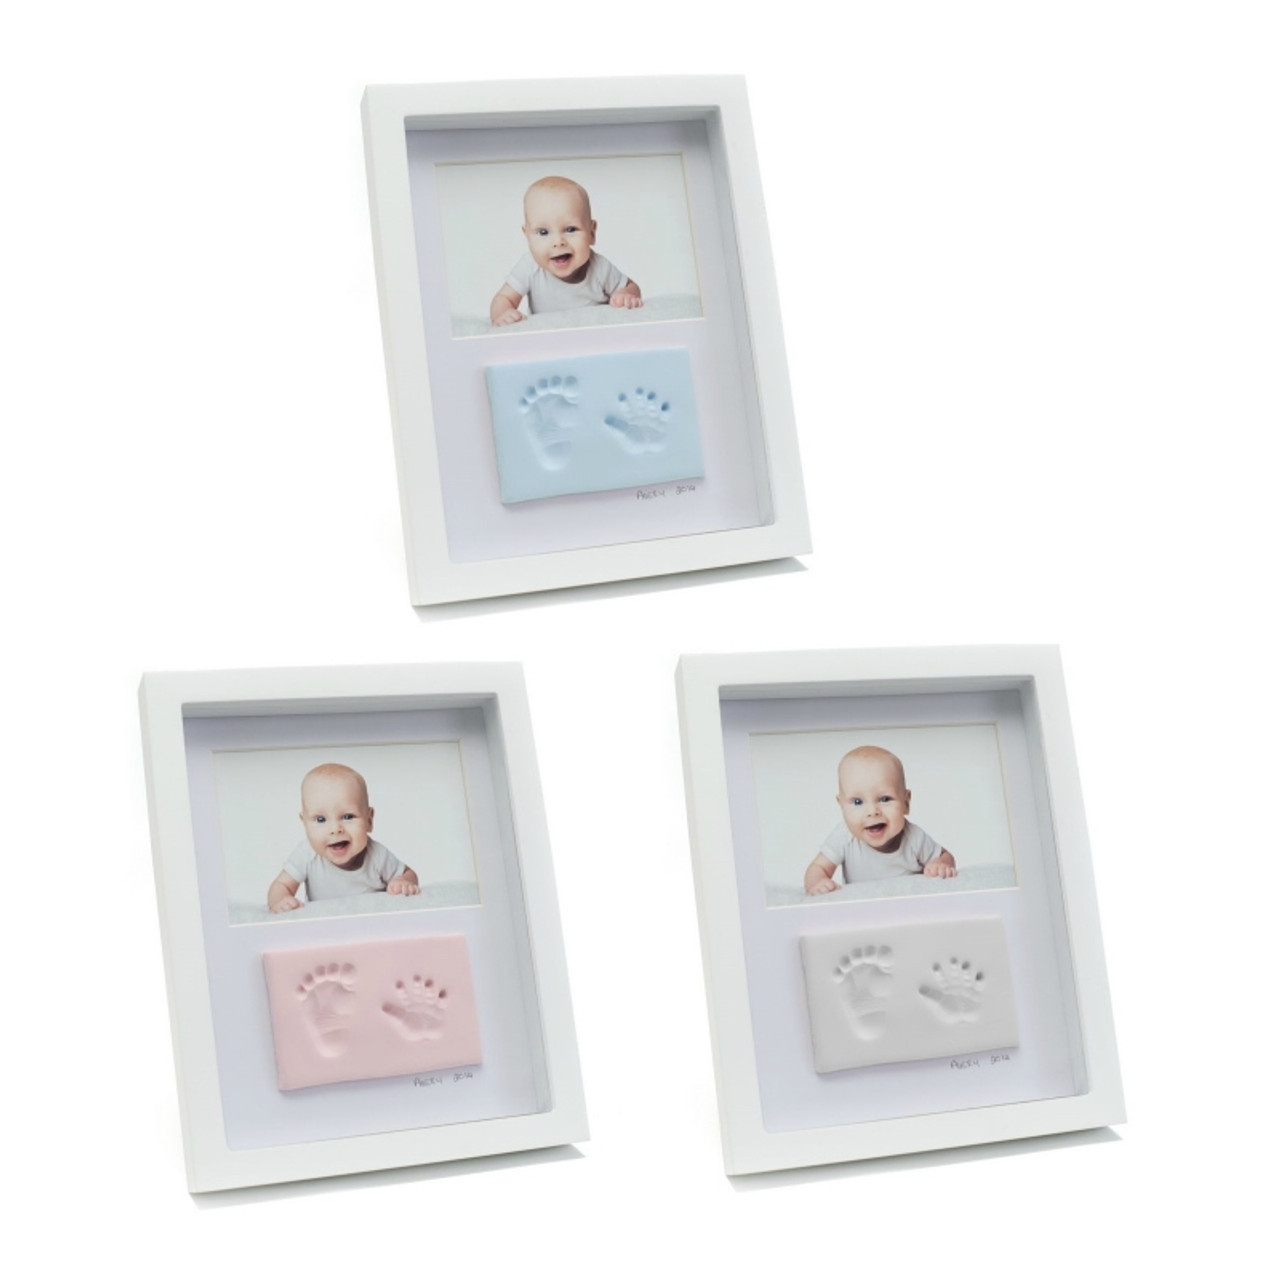 Baby Ink Soft Clay Keepsake Frame Impression Kit at Baby Barn Discounts Capture precious memories in a safe and easy way - Roll.